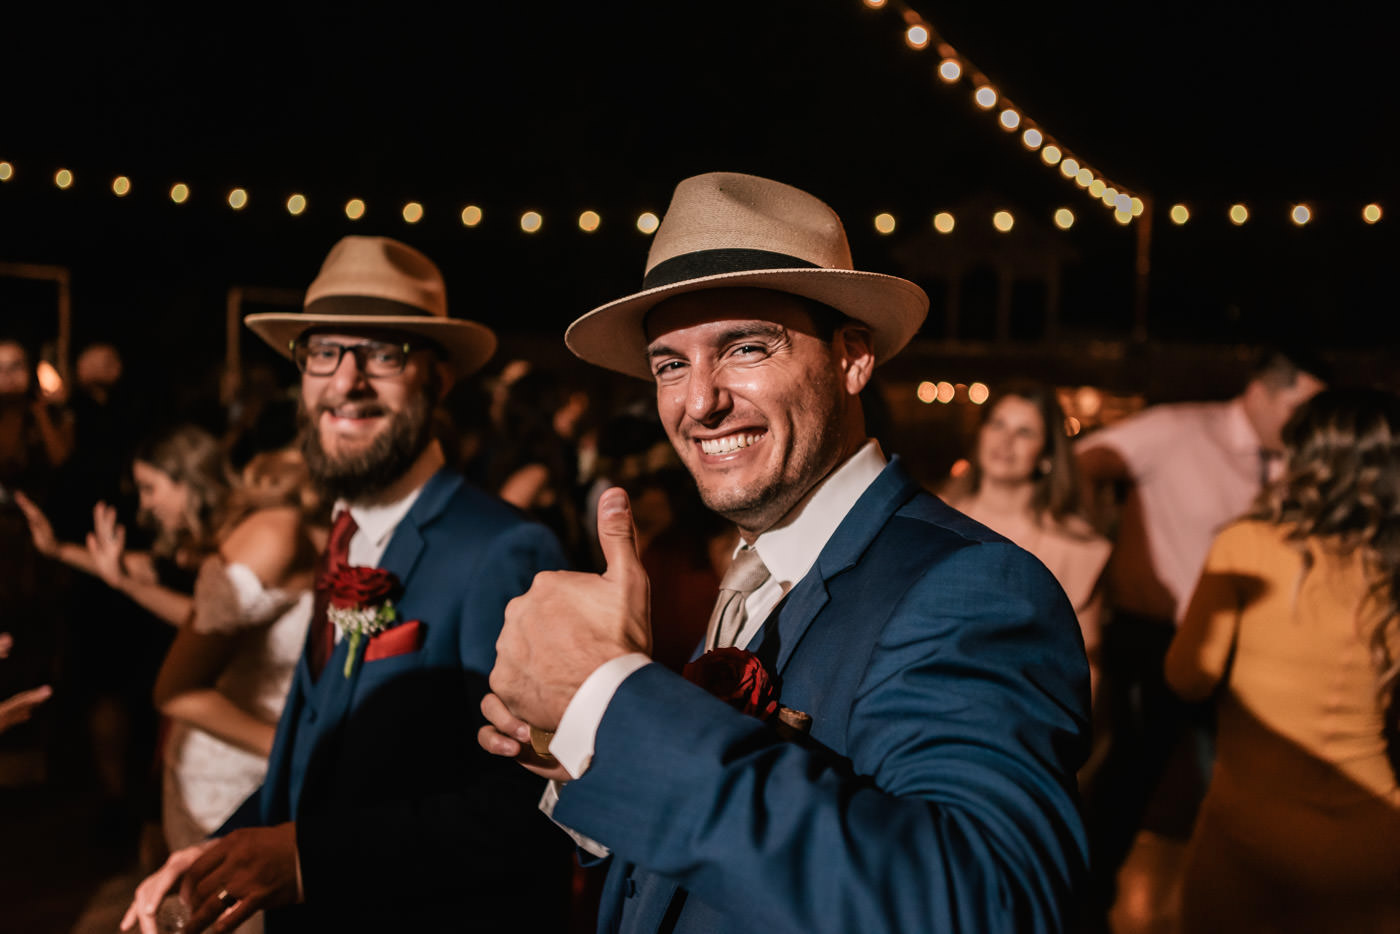 Groom gives a big smile and a thumbs up at the reception.